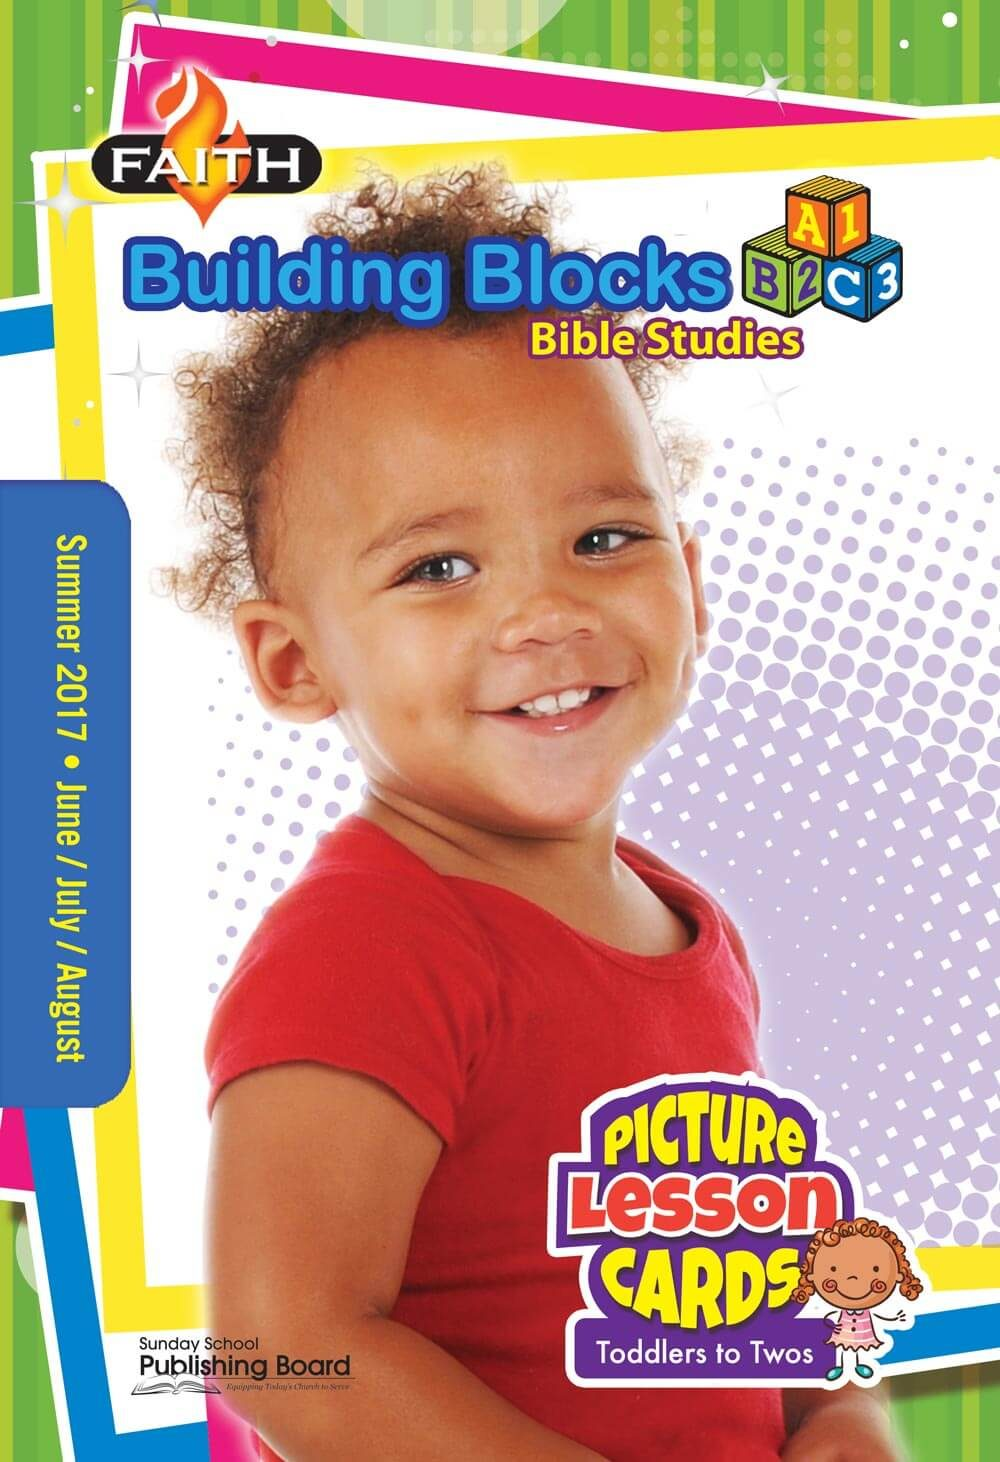 Faith Building Blocks Lesson Cards for Toddlers to Twos (Summer 2017)–Digital Edition